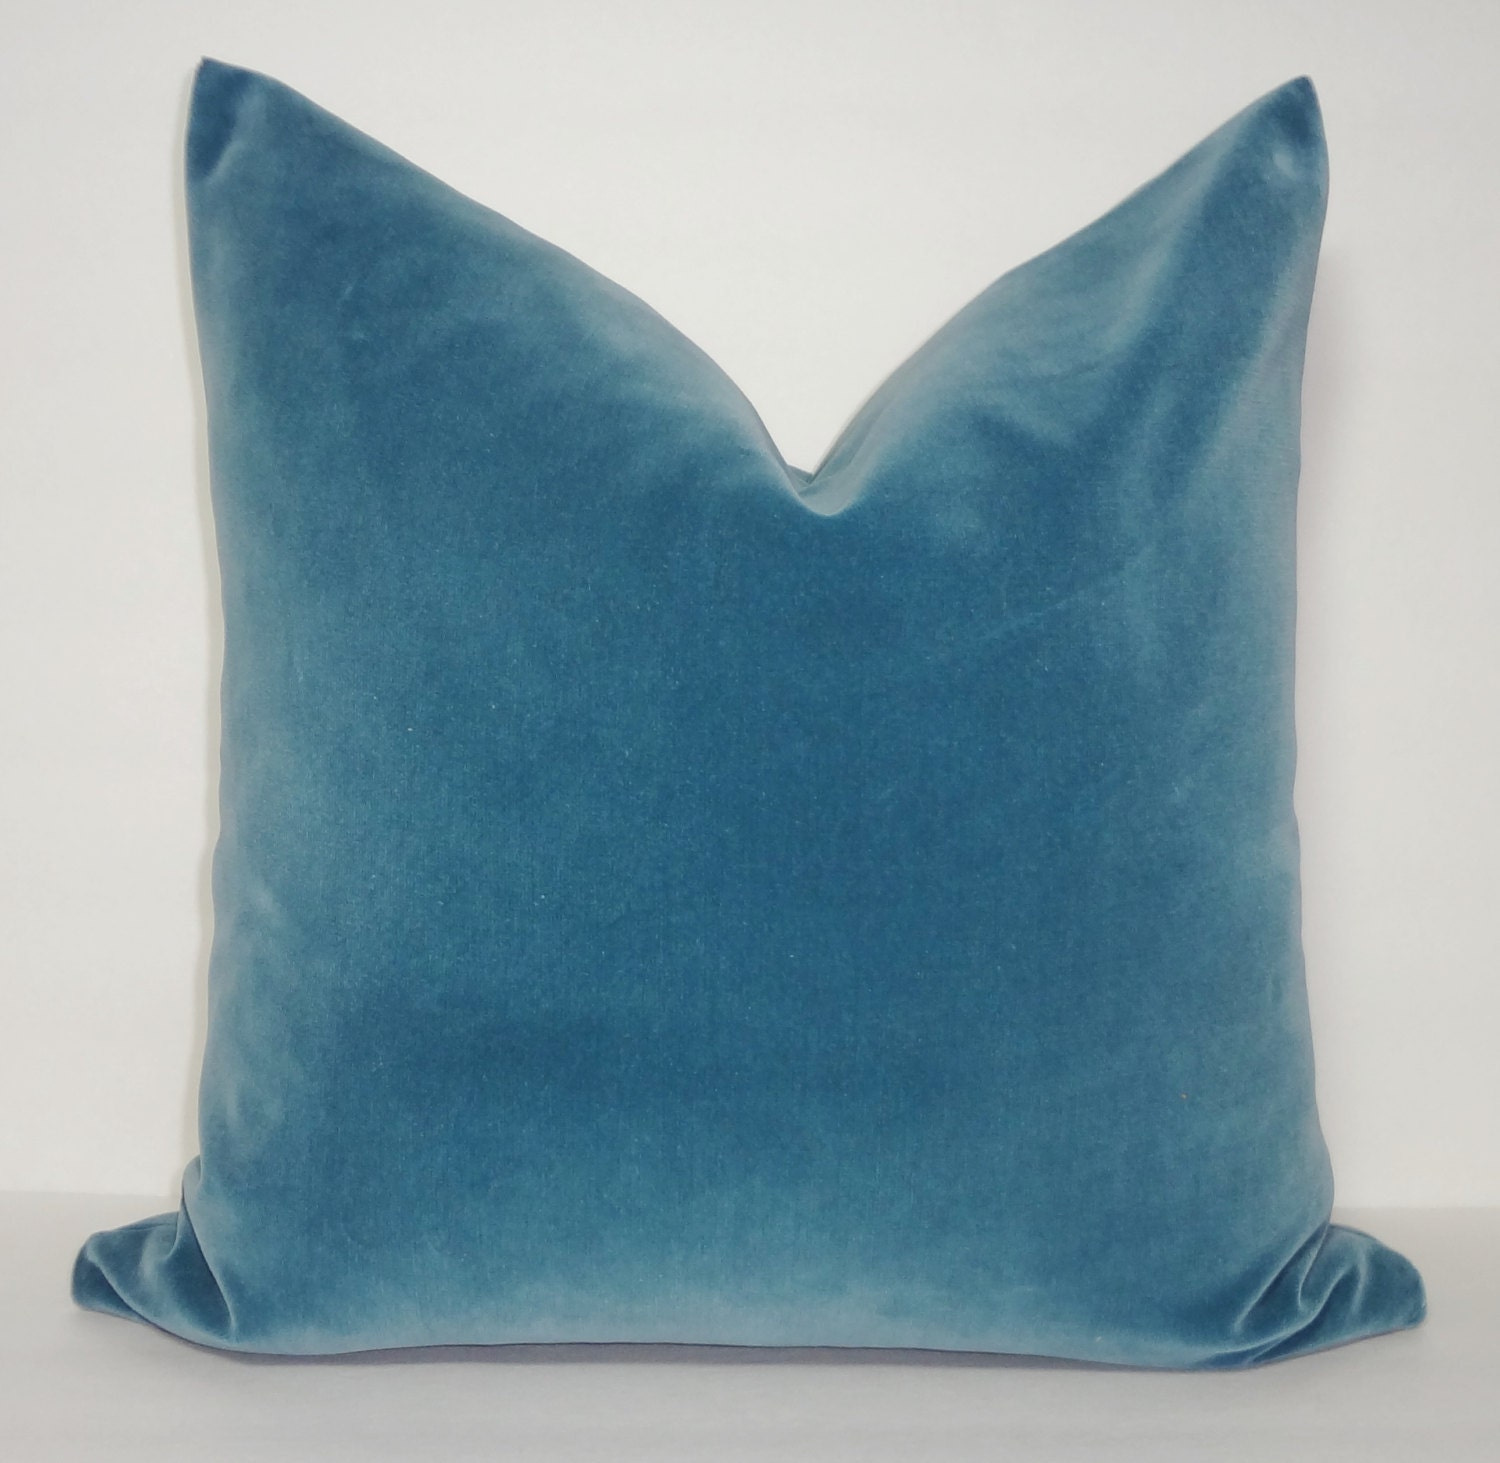 Blue Velvet Decorative Pillow : JB Martin Light Teal Blue Velvet Decorative Pillow Cover Heavy